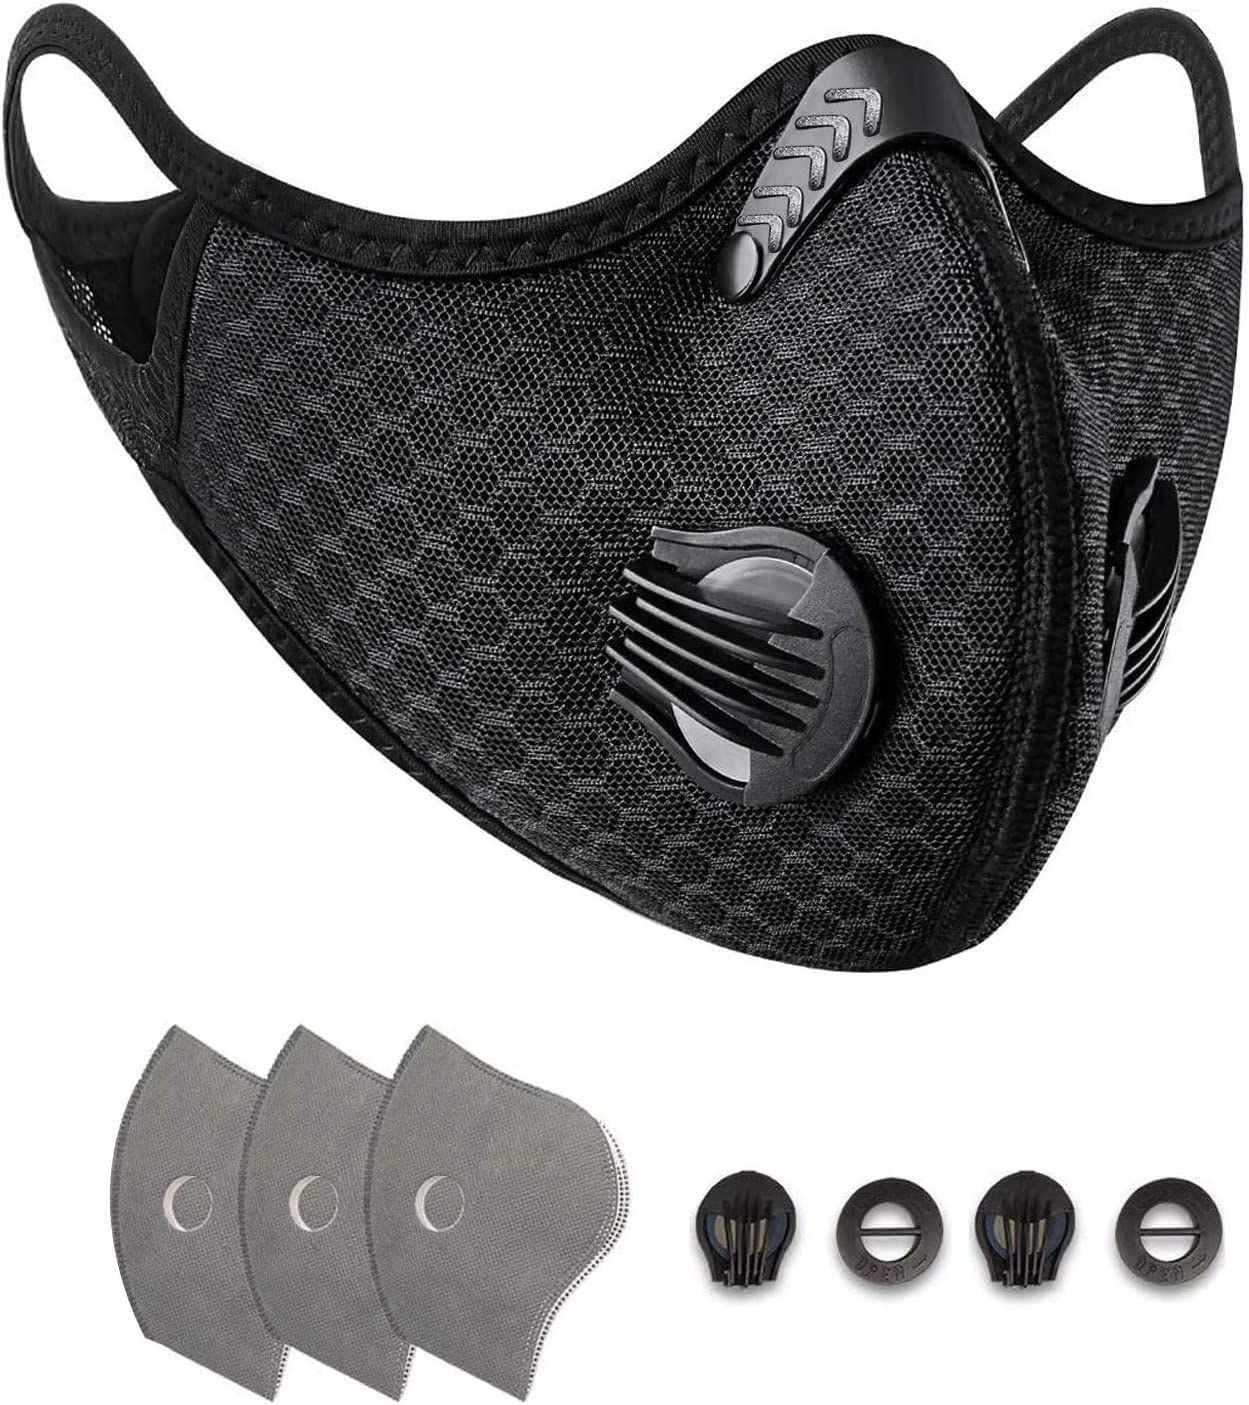 Anti-Pollution Sports Mask with 3 Activated Carbon Filters and 2 Valves